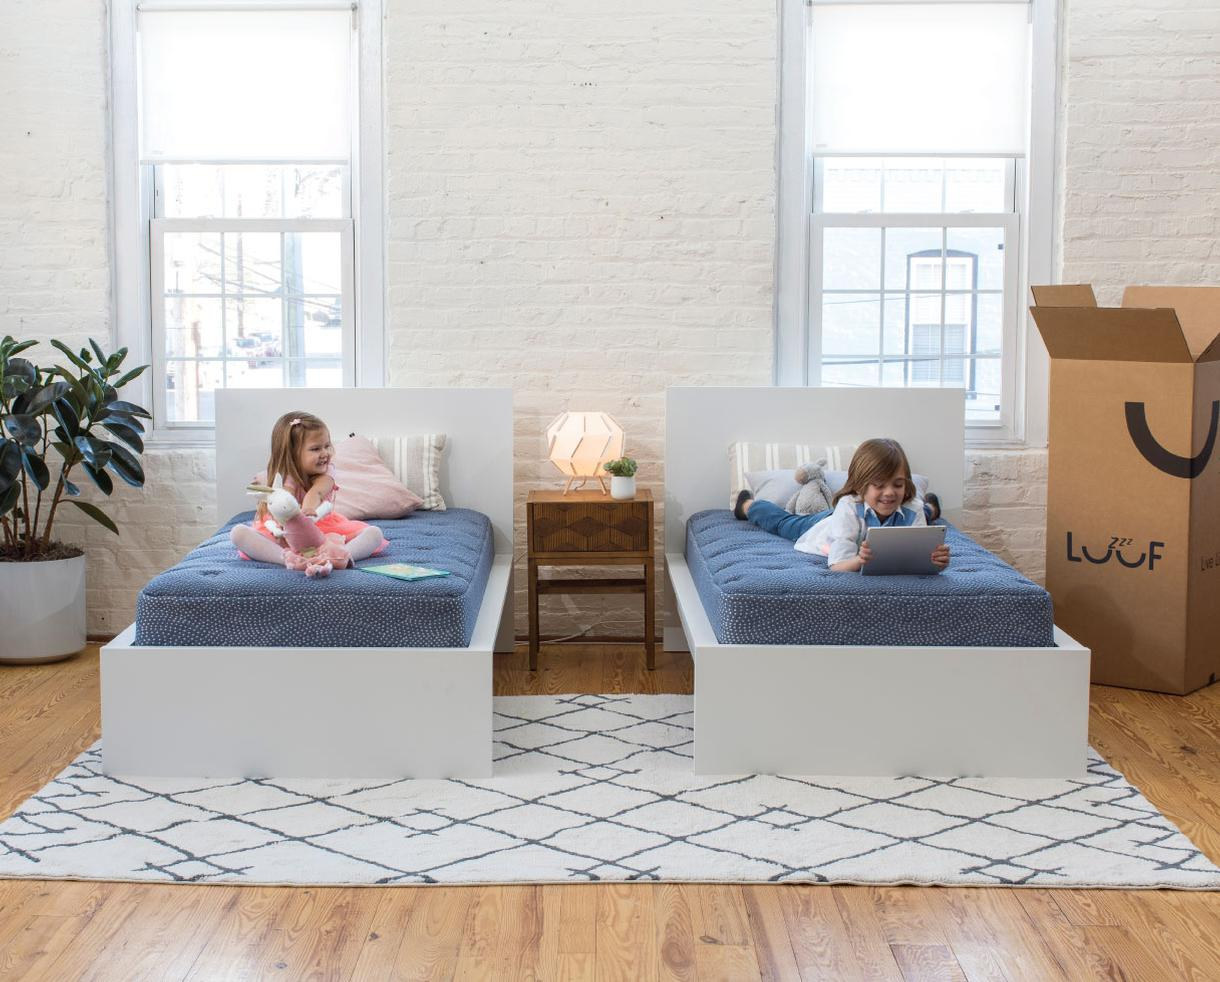 Save 25% Off Luuf Mattresses & Accessories - Shipping Included!